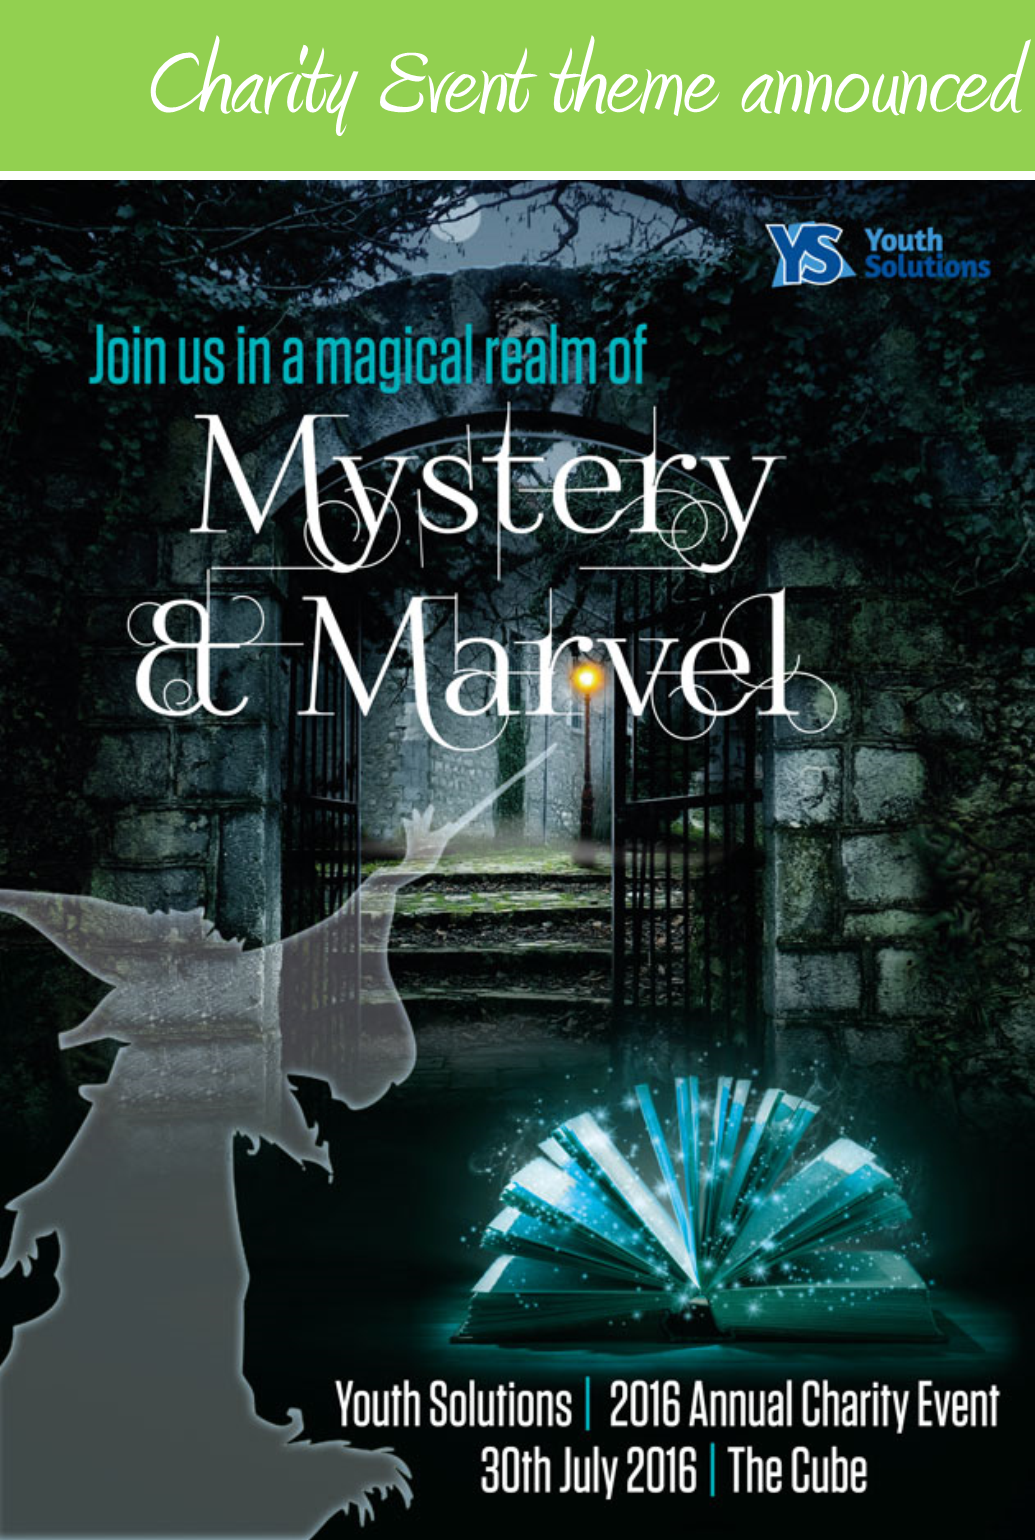 Youth Solutions Charity Event Theme Announced - Mystery and Marvel!